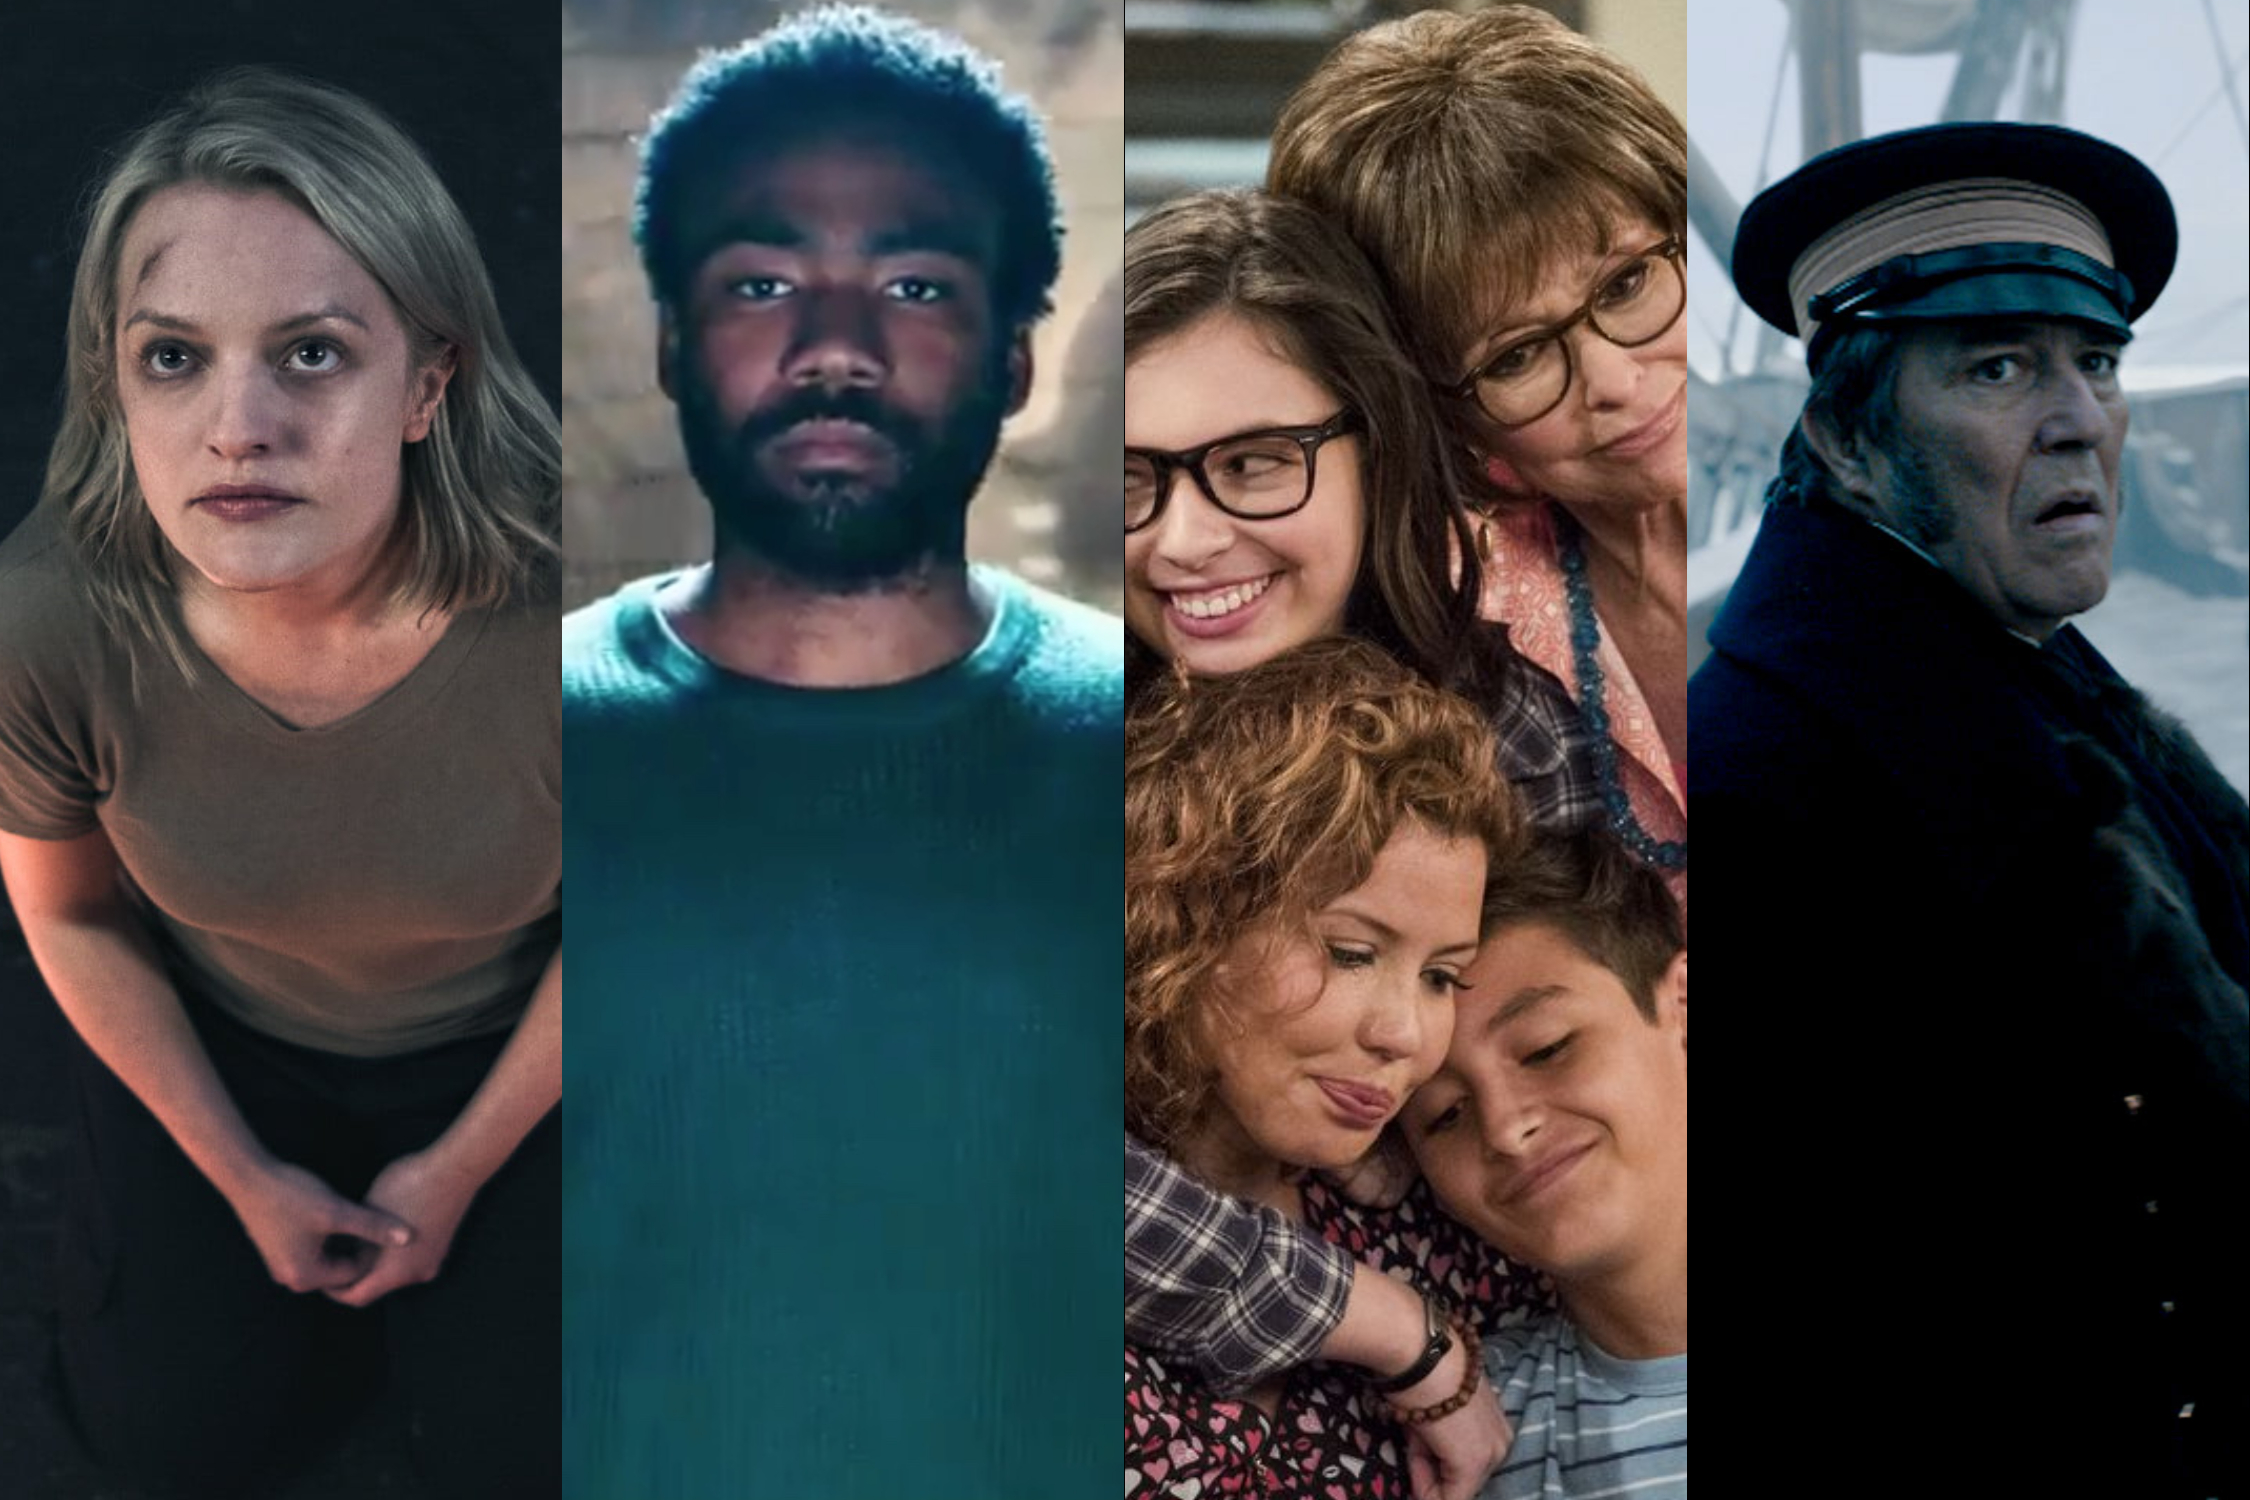 The 24 best TV shows of 2018 so far